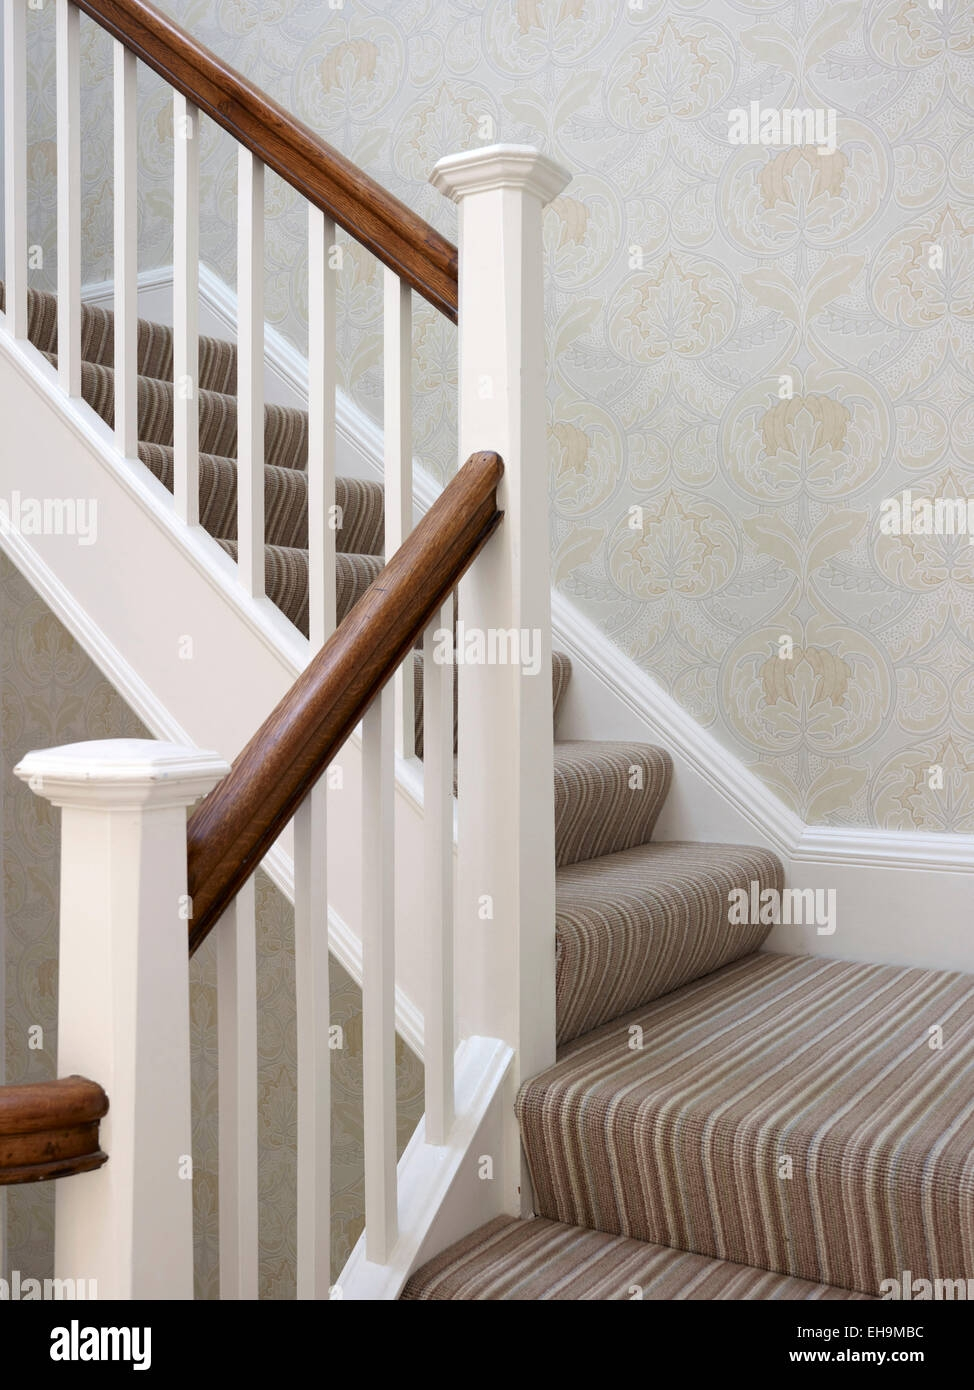 Brown And White Banister On Staircase Residential House   White And Grey Banister   Newel Post   Narrow Awkward Staircase   Stair Railing   Entryway   Wall